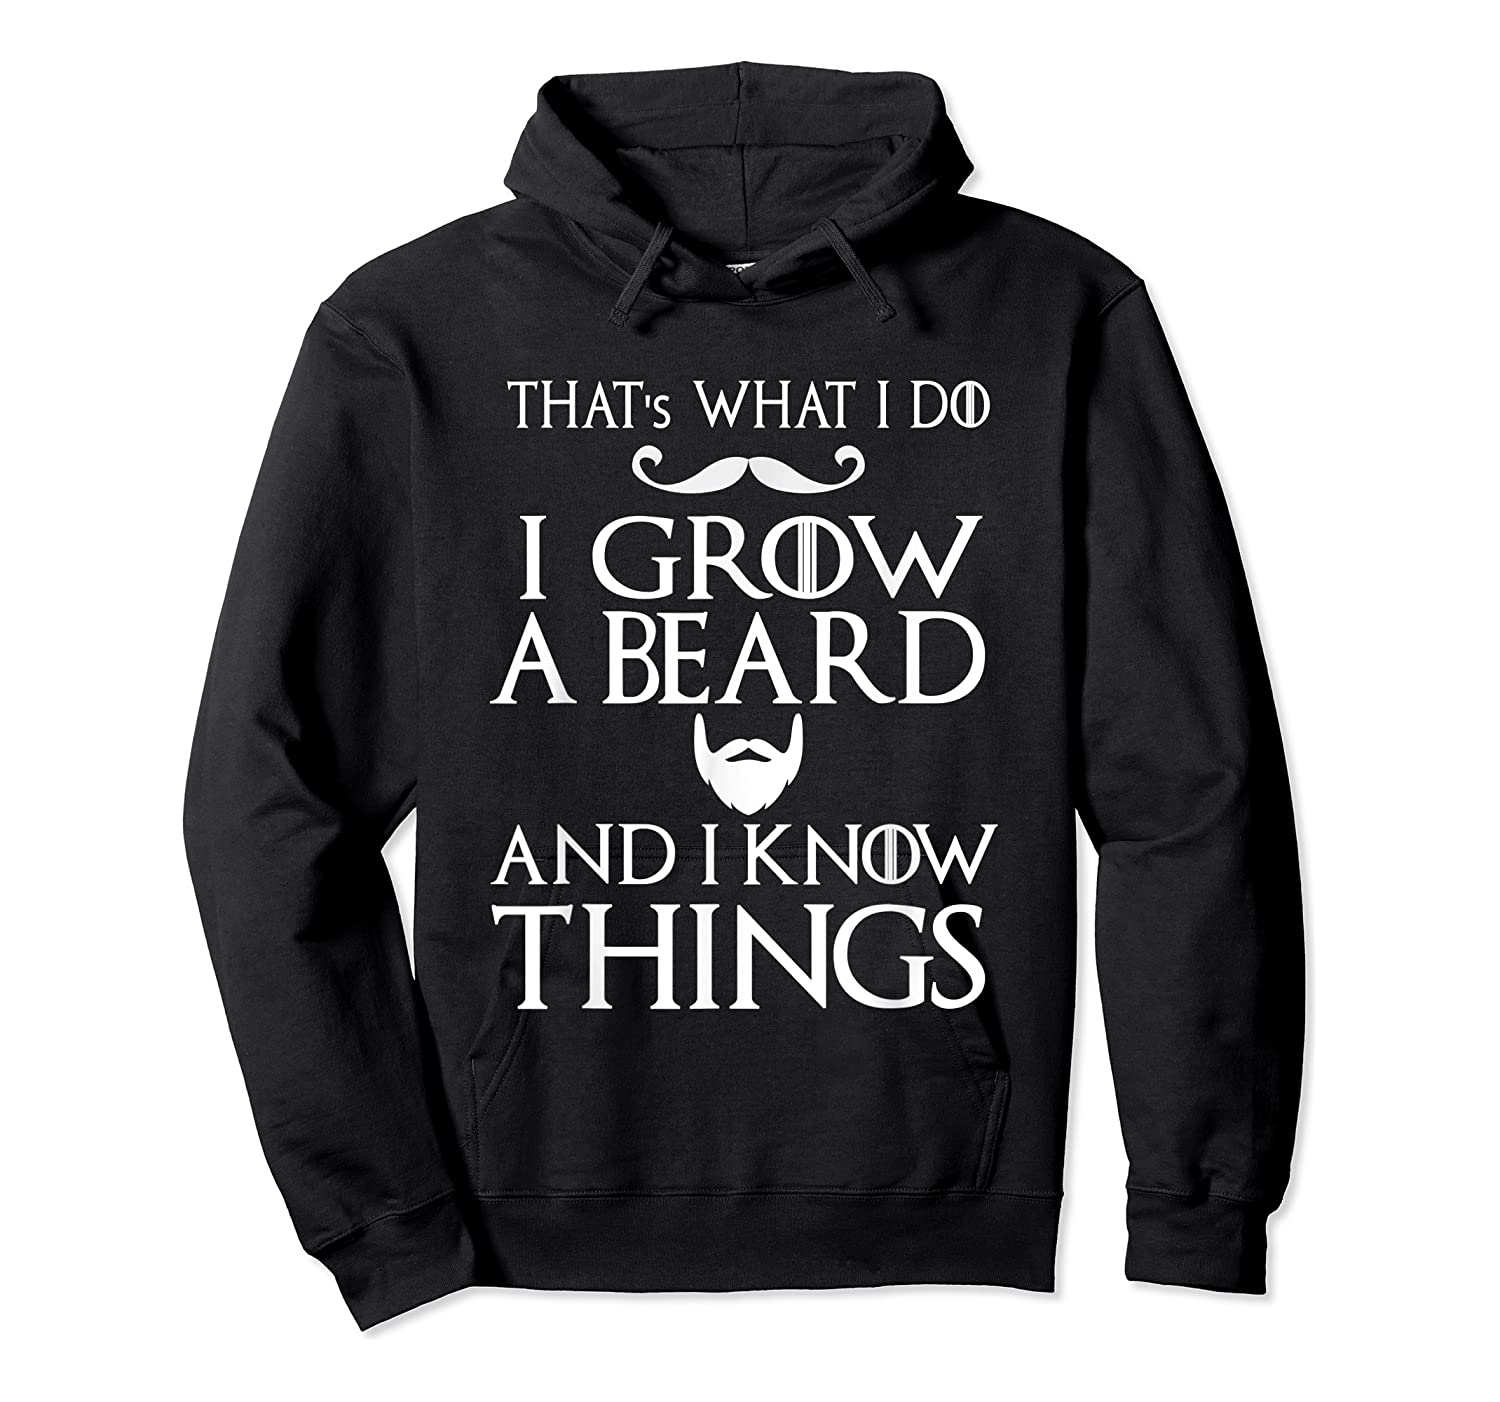 That's What I Do I Grow A Beard And I Know Things Shirts Unisex Pullover Hoodie